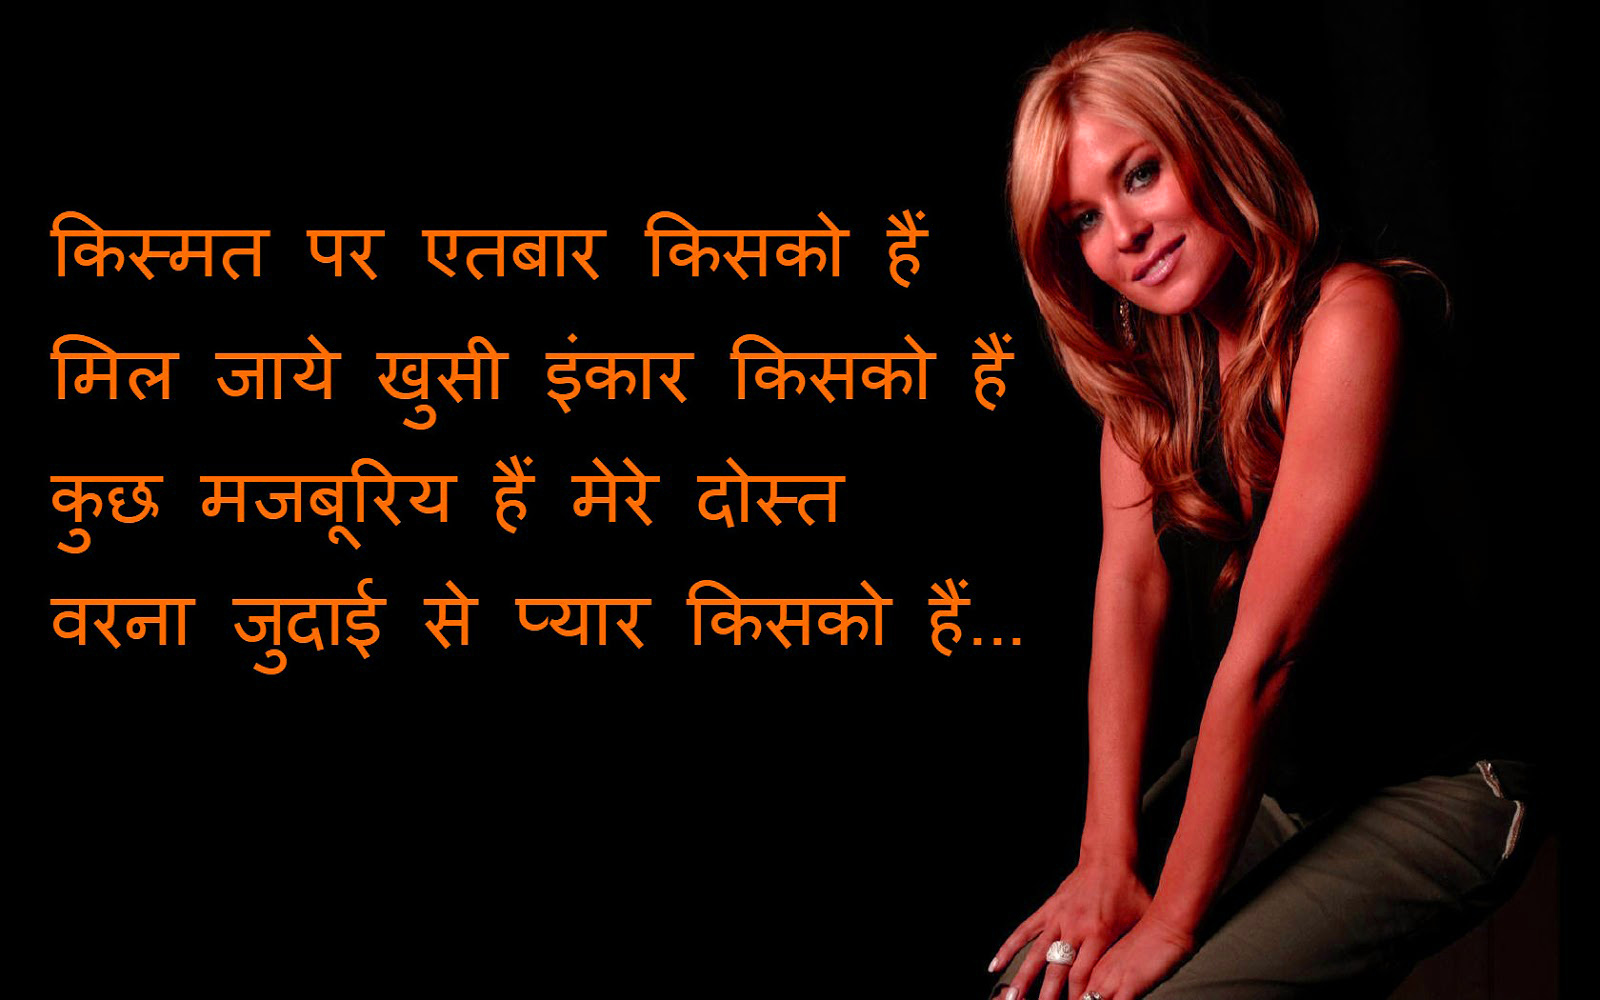 235+ Broken Heart Dard Bhari Hindi Shayari images Wallpaper Photo Pics